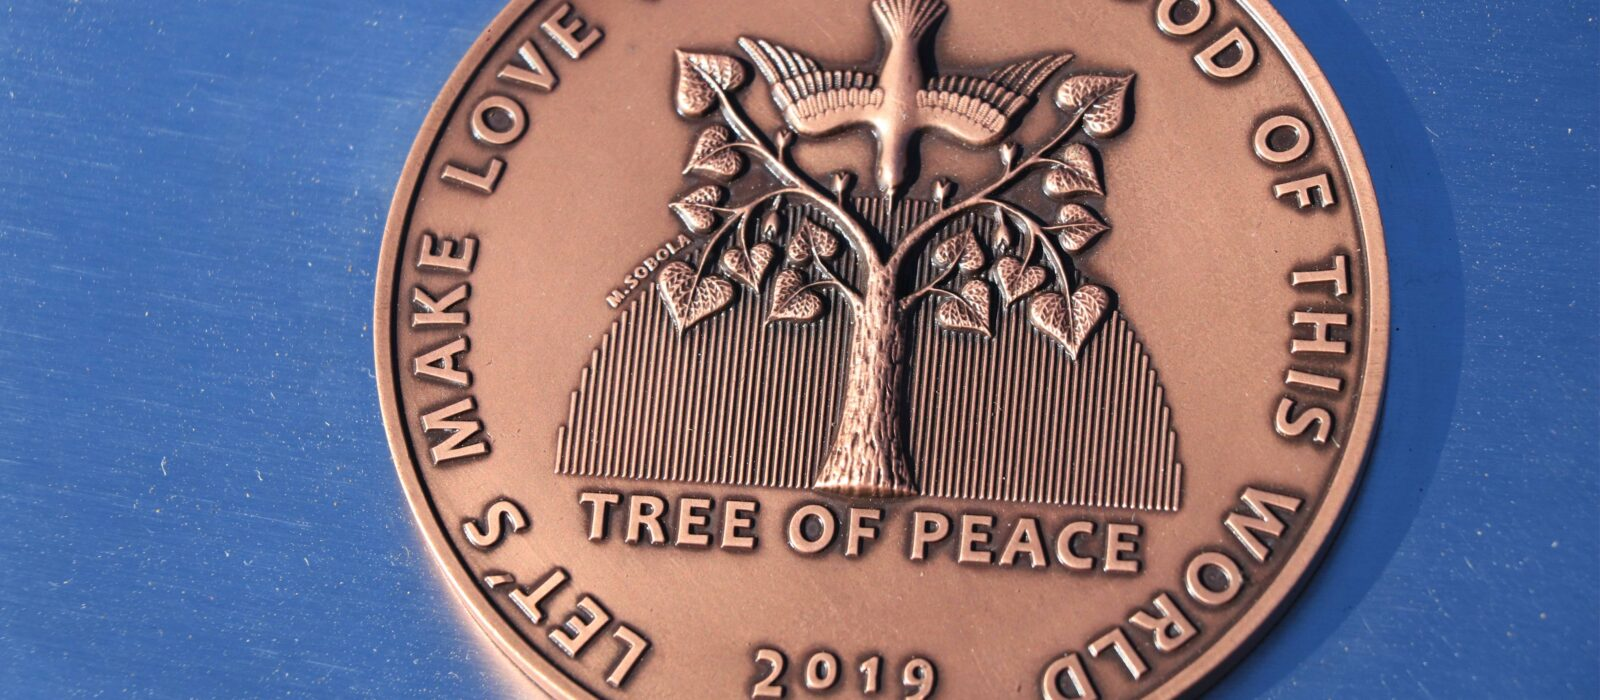 Tree or Peace / Servare et Manere